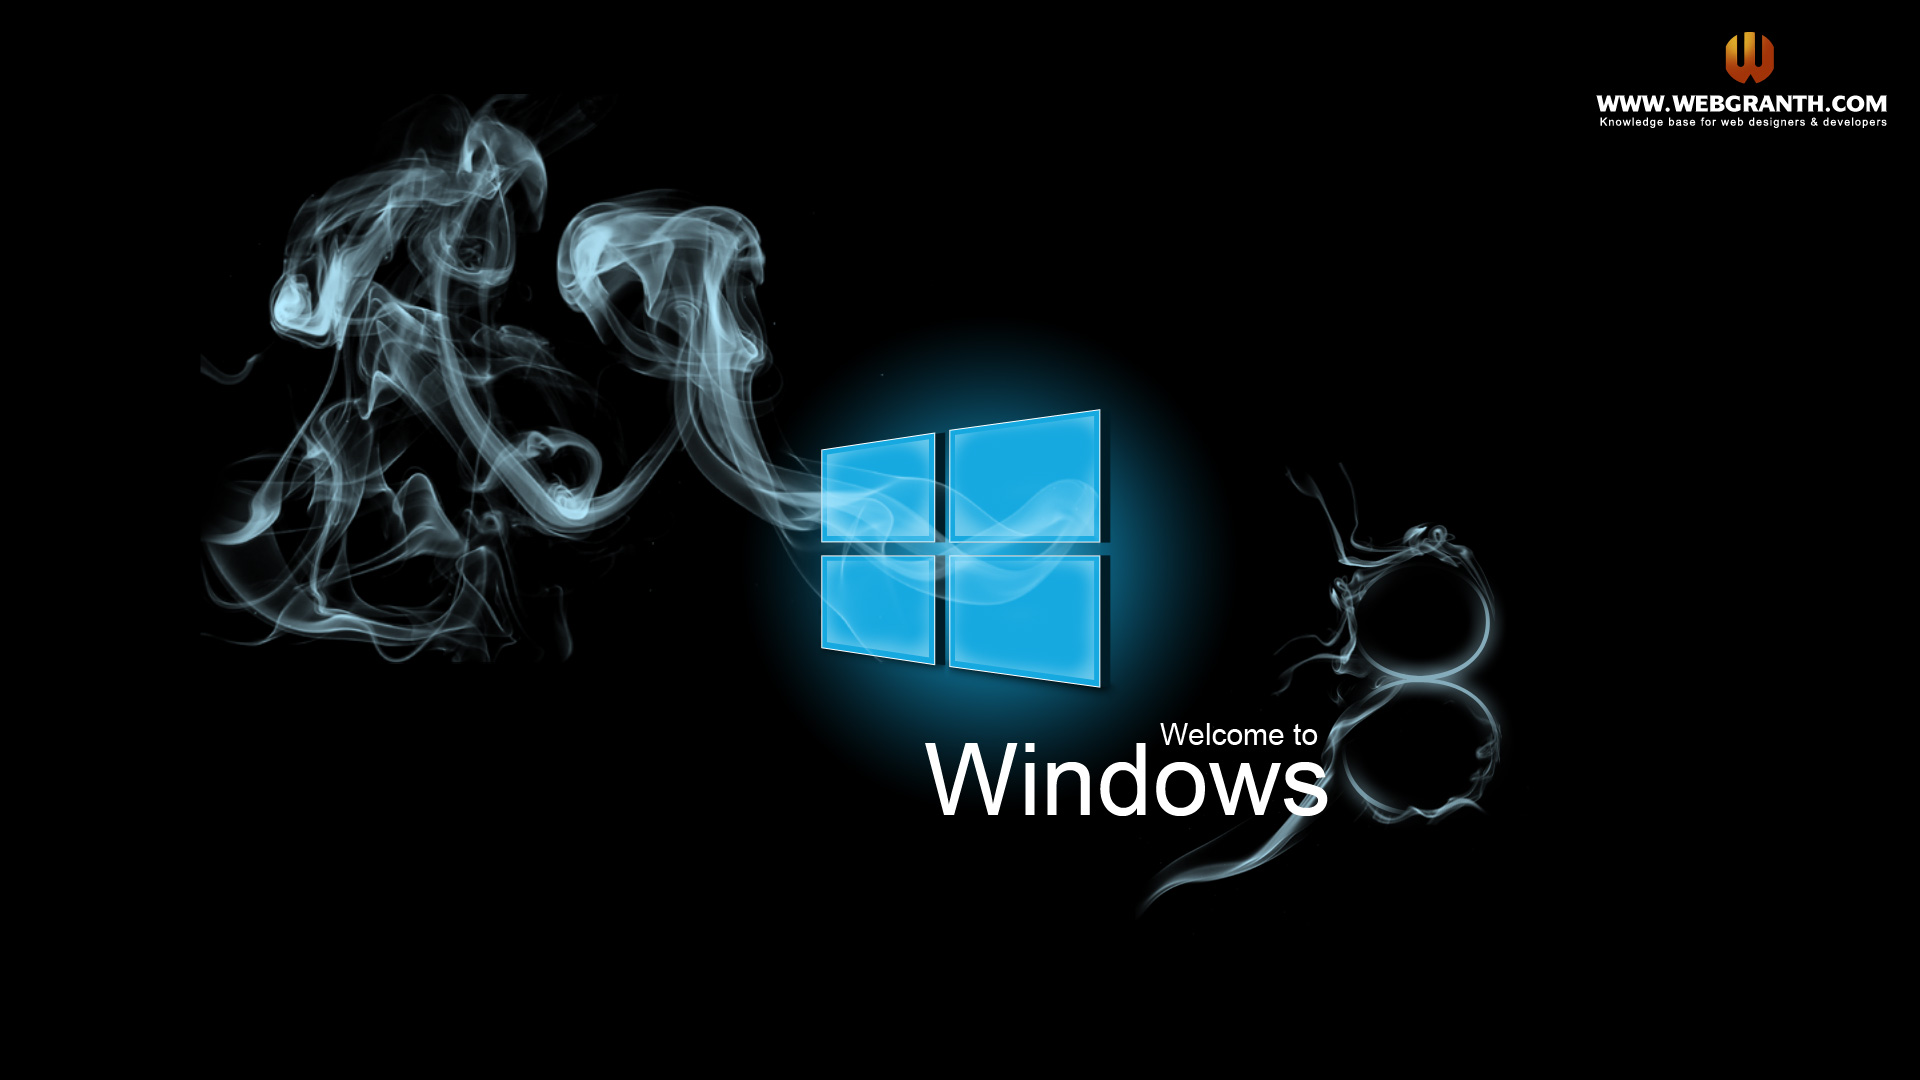 too love the smoke wallpapers? This free window 8 wallpaper background ...